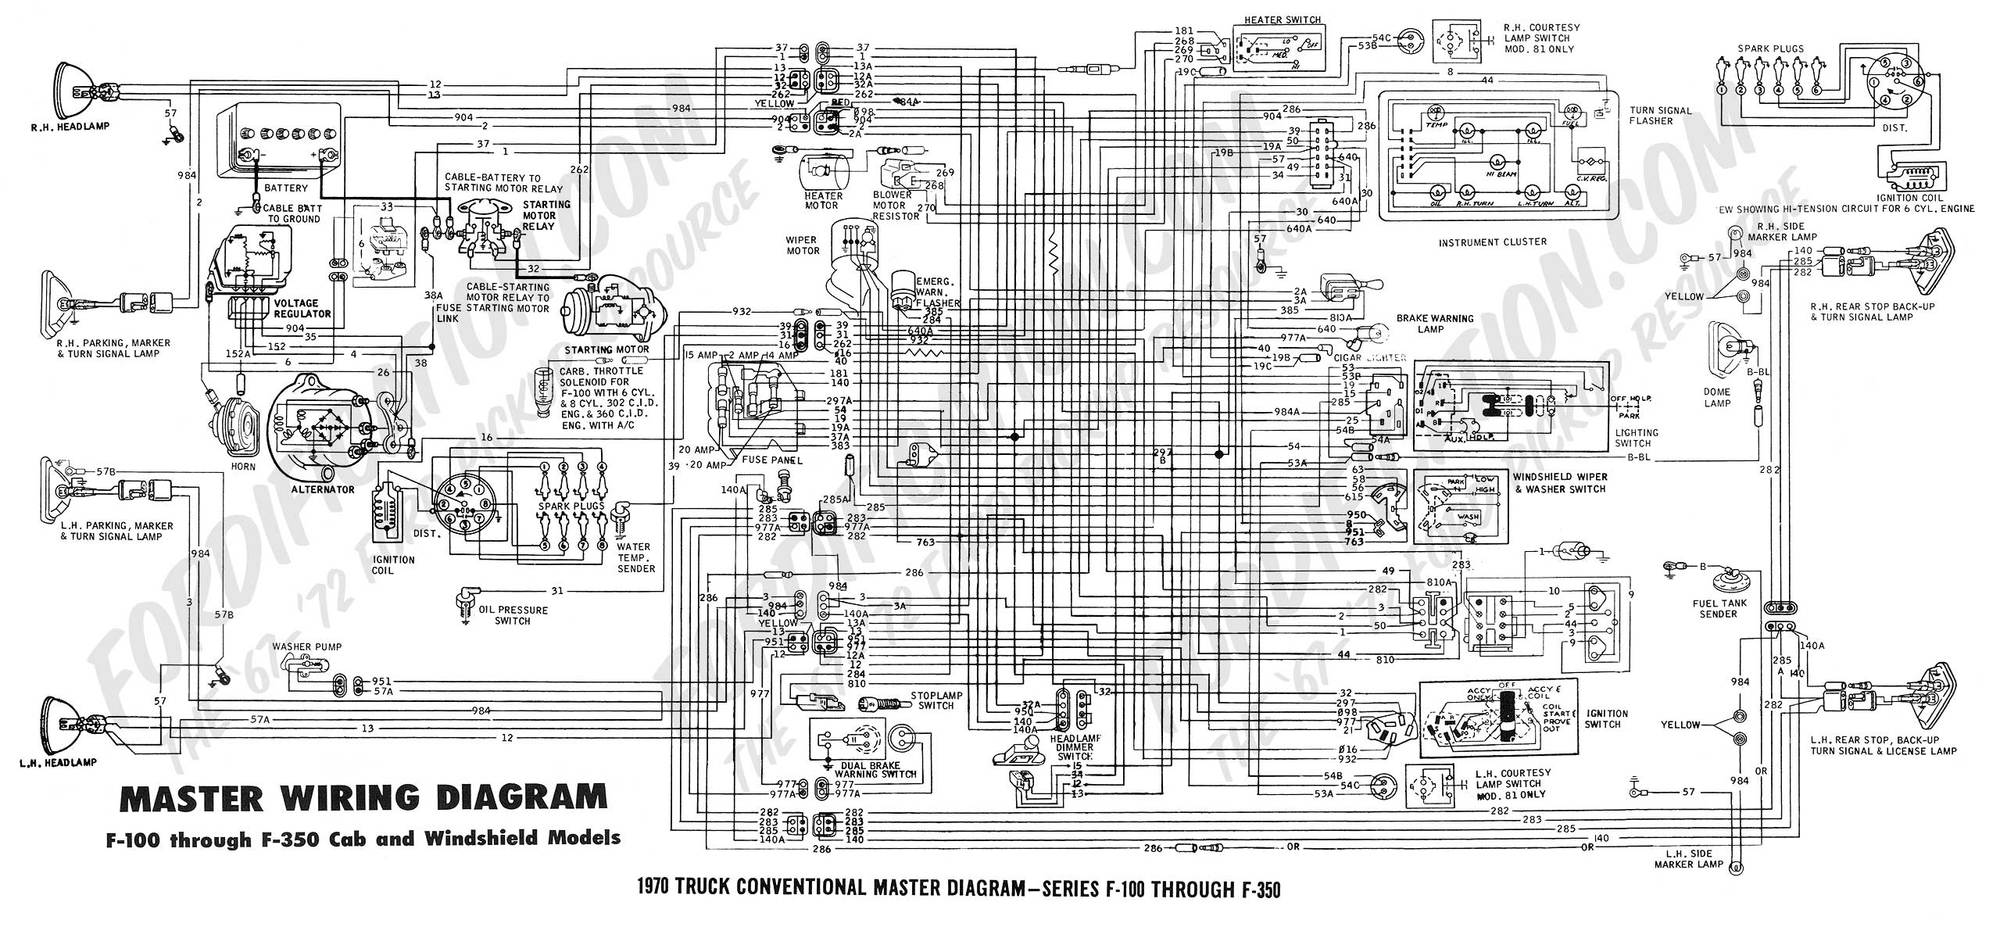 80 wiring_diagram_70_master_77b0650ff5823fc998e119c71f59ee29a8fbe89a reznor heater wiring schematic efcaviation com goodman furnace wiring diagram at bakdesigns.co